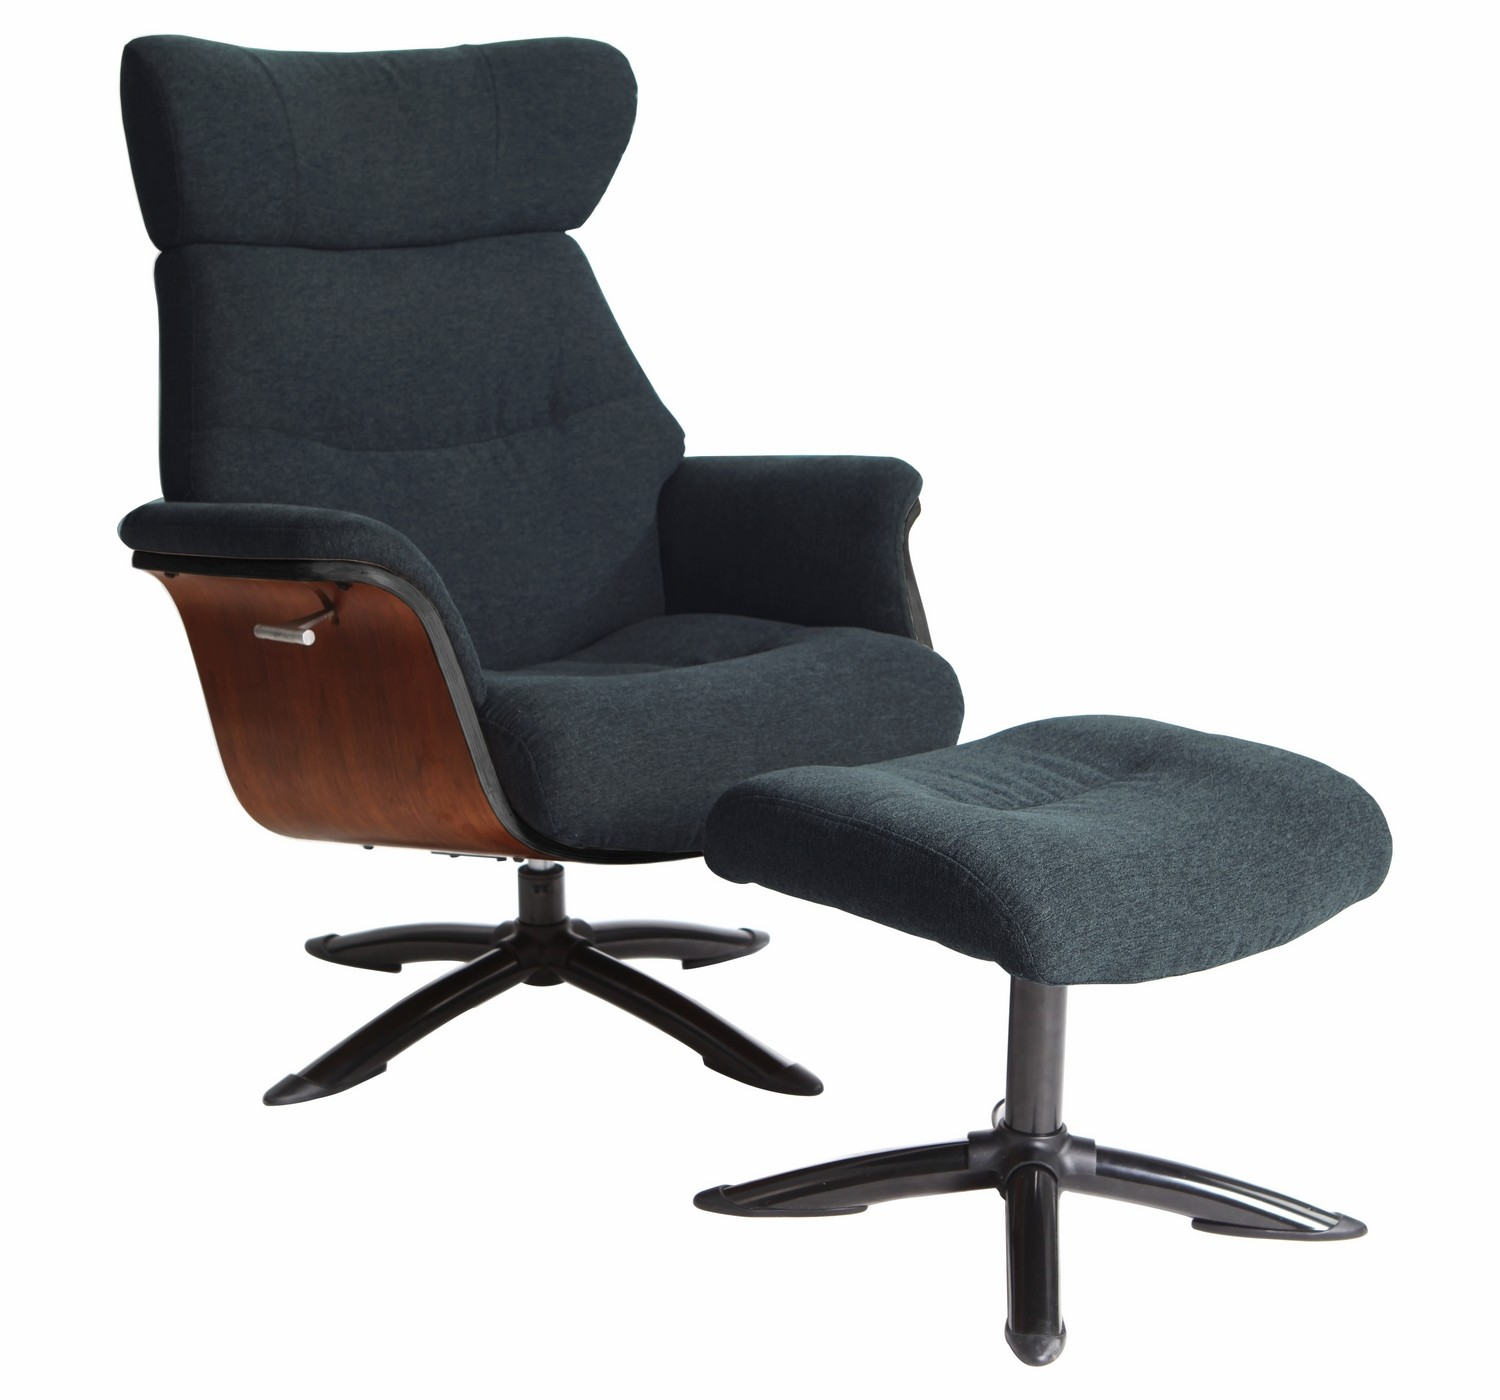 fe38689bc54223 fauteuil relax pivotant lagoon